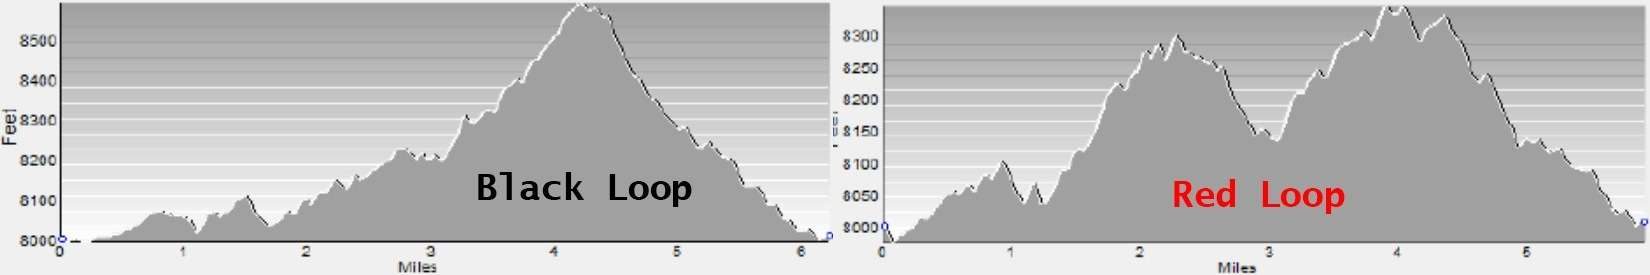 Flagstaff Marathon Elevation Map